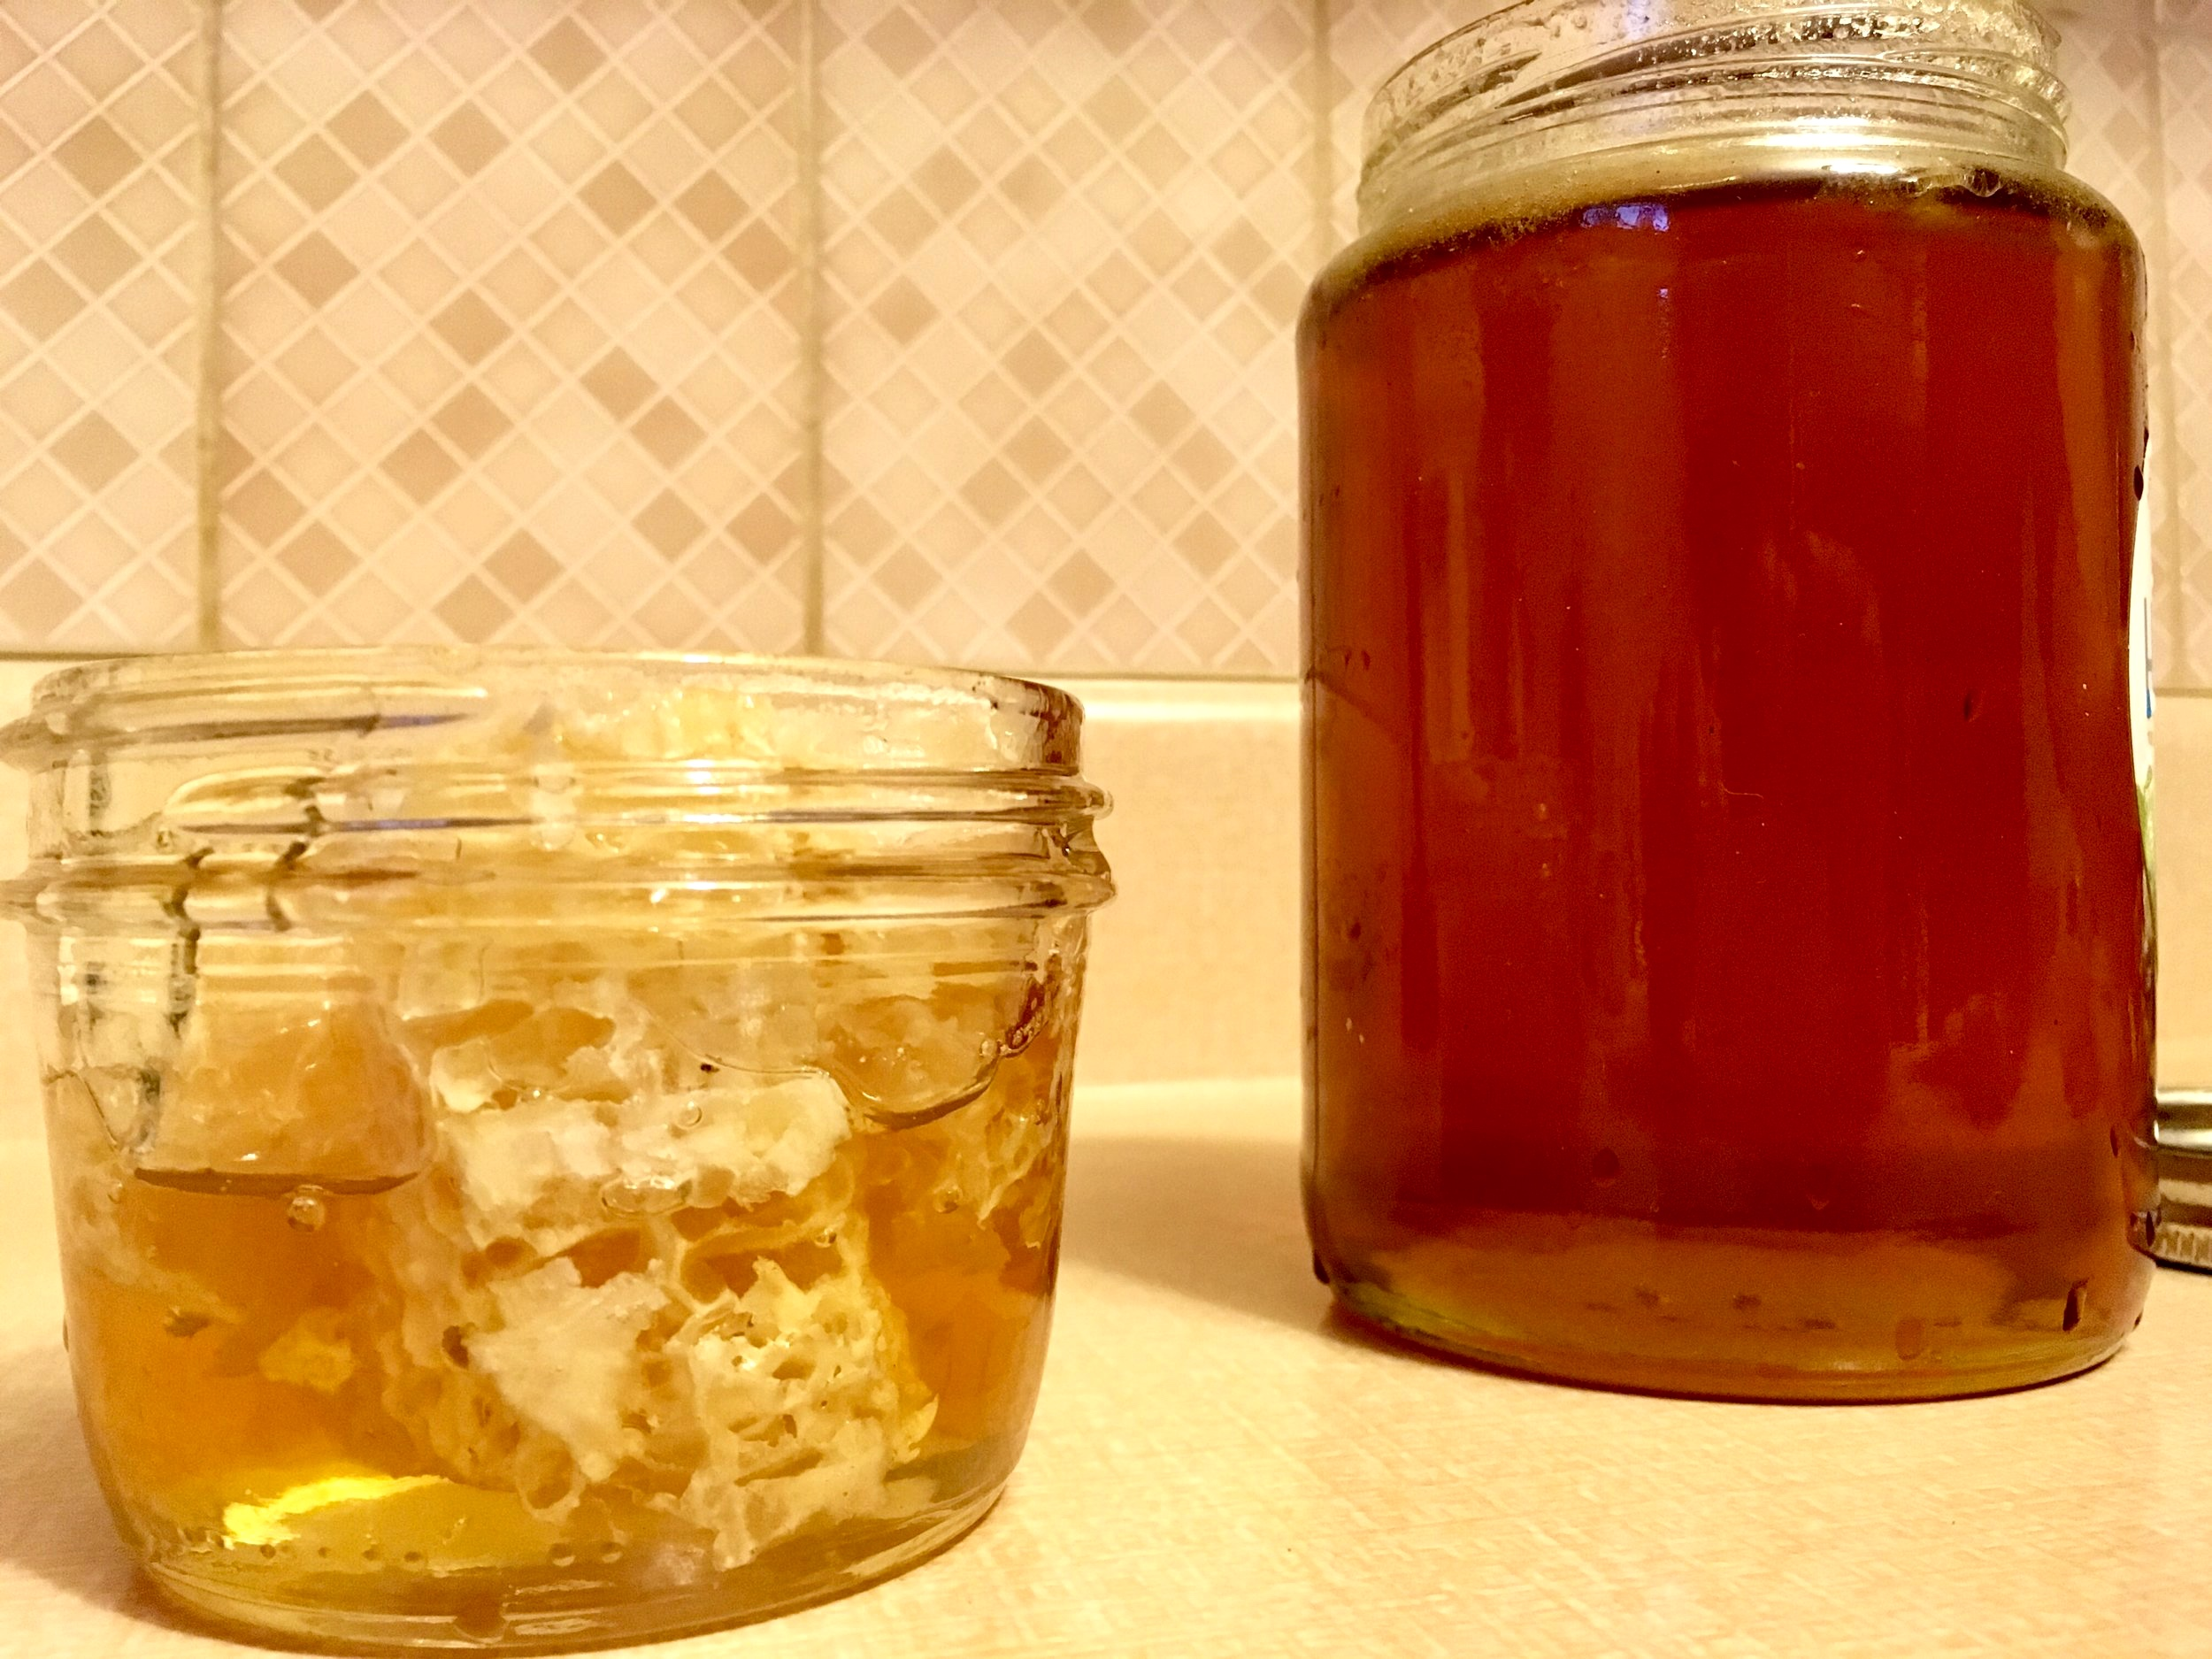 Save the bees! HAWAIN HONEY + comb (LEFT) & CANADIAN local HONEY (RIGHT)